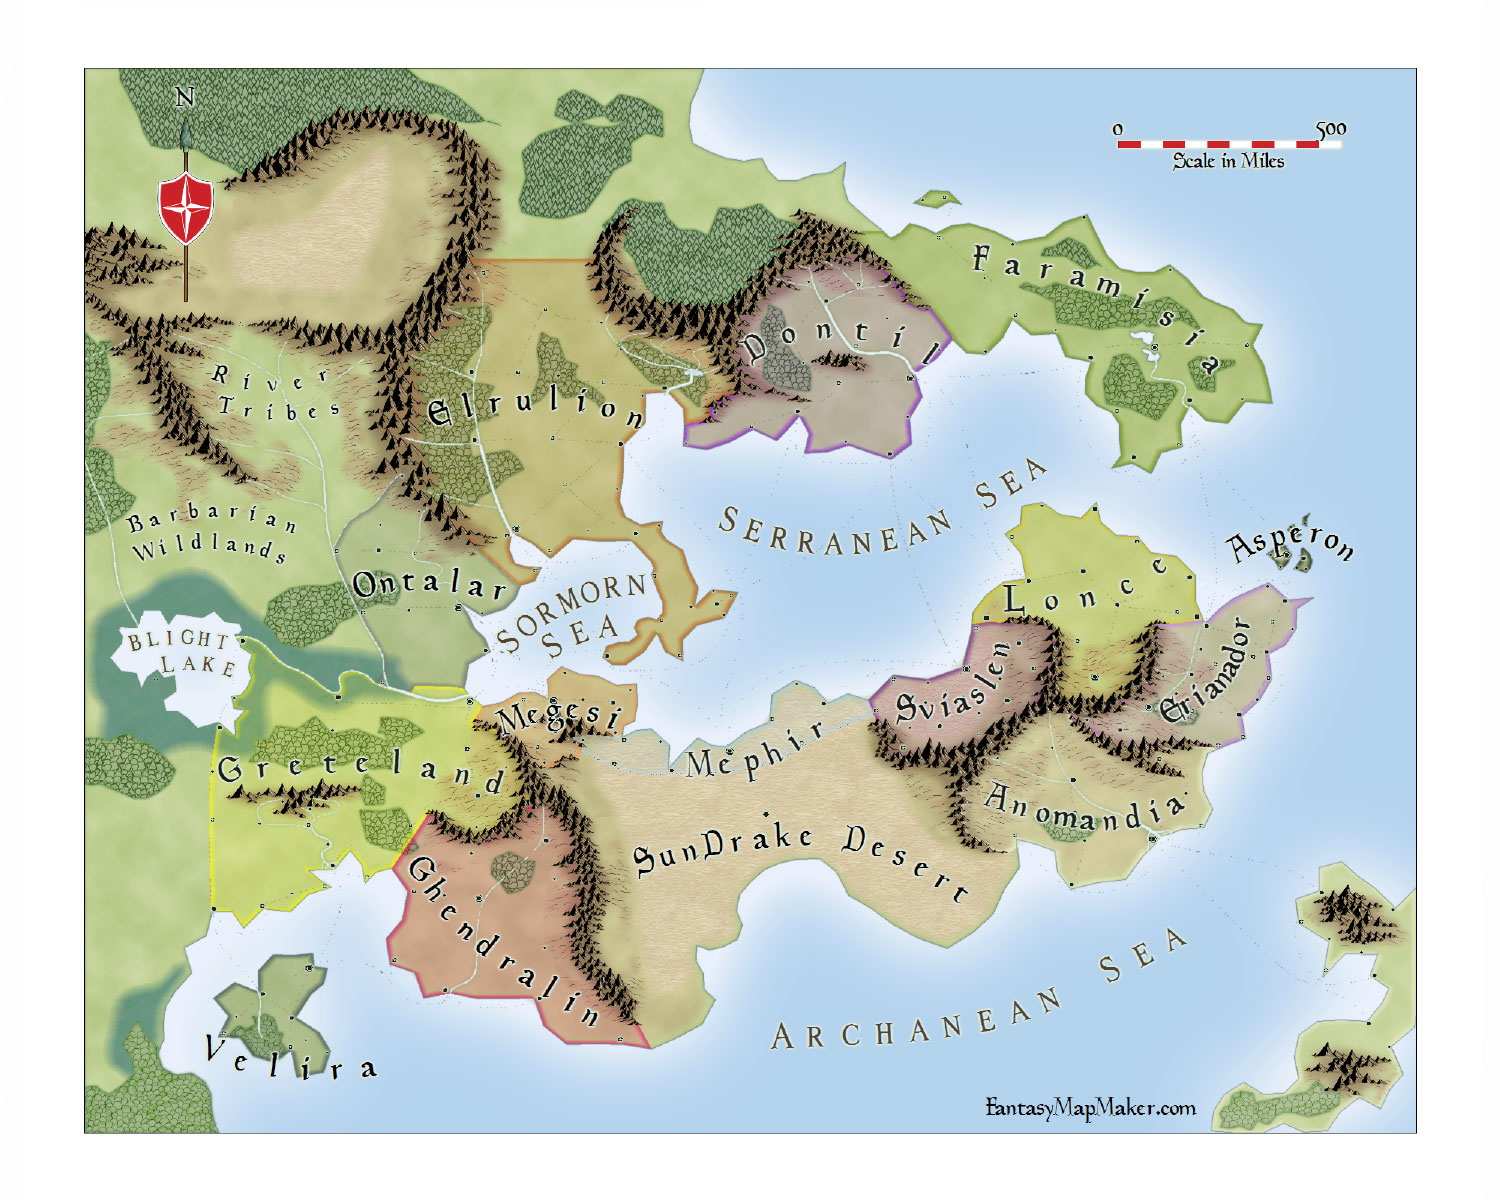 Popular 225 list fantasy map maker par lindstrom style fantasy world map pr lindstrm style fantasy world gumiabroncs Images